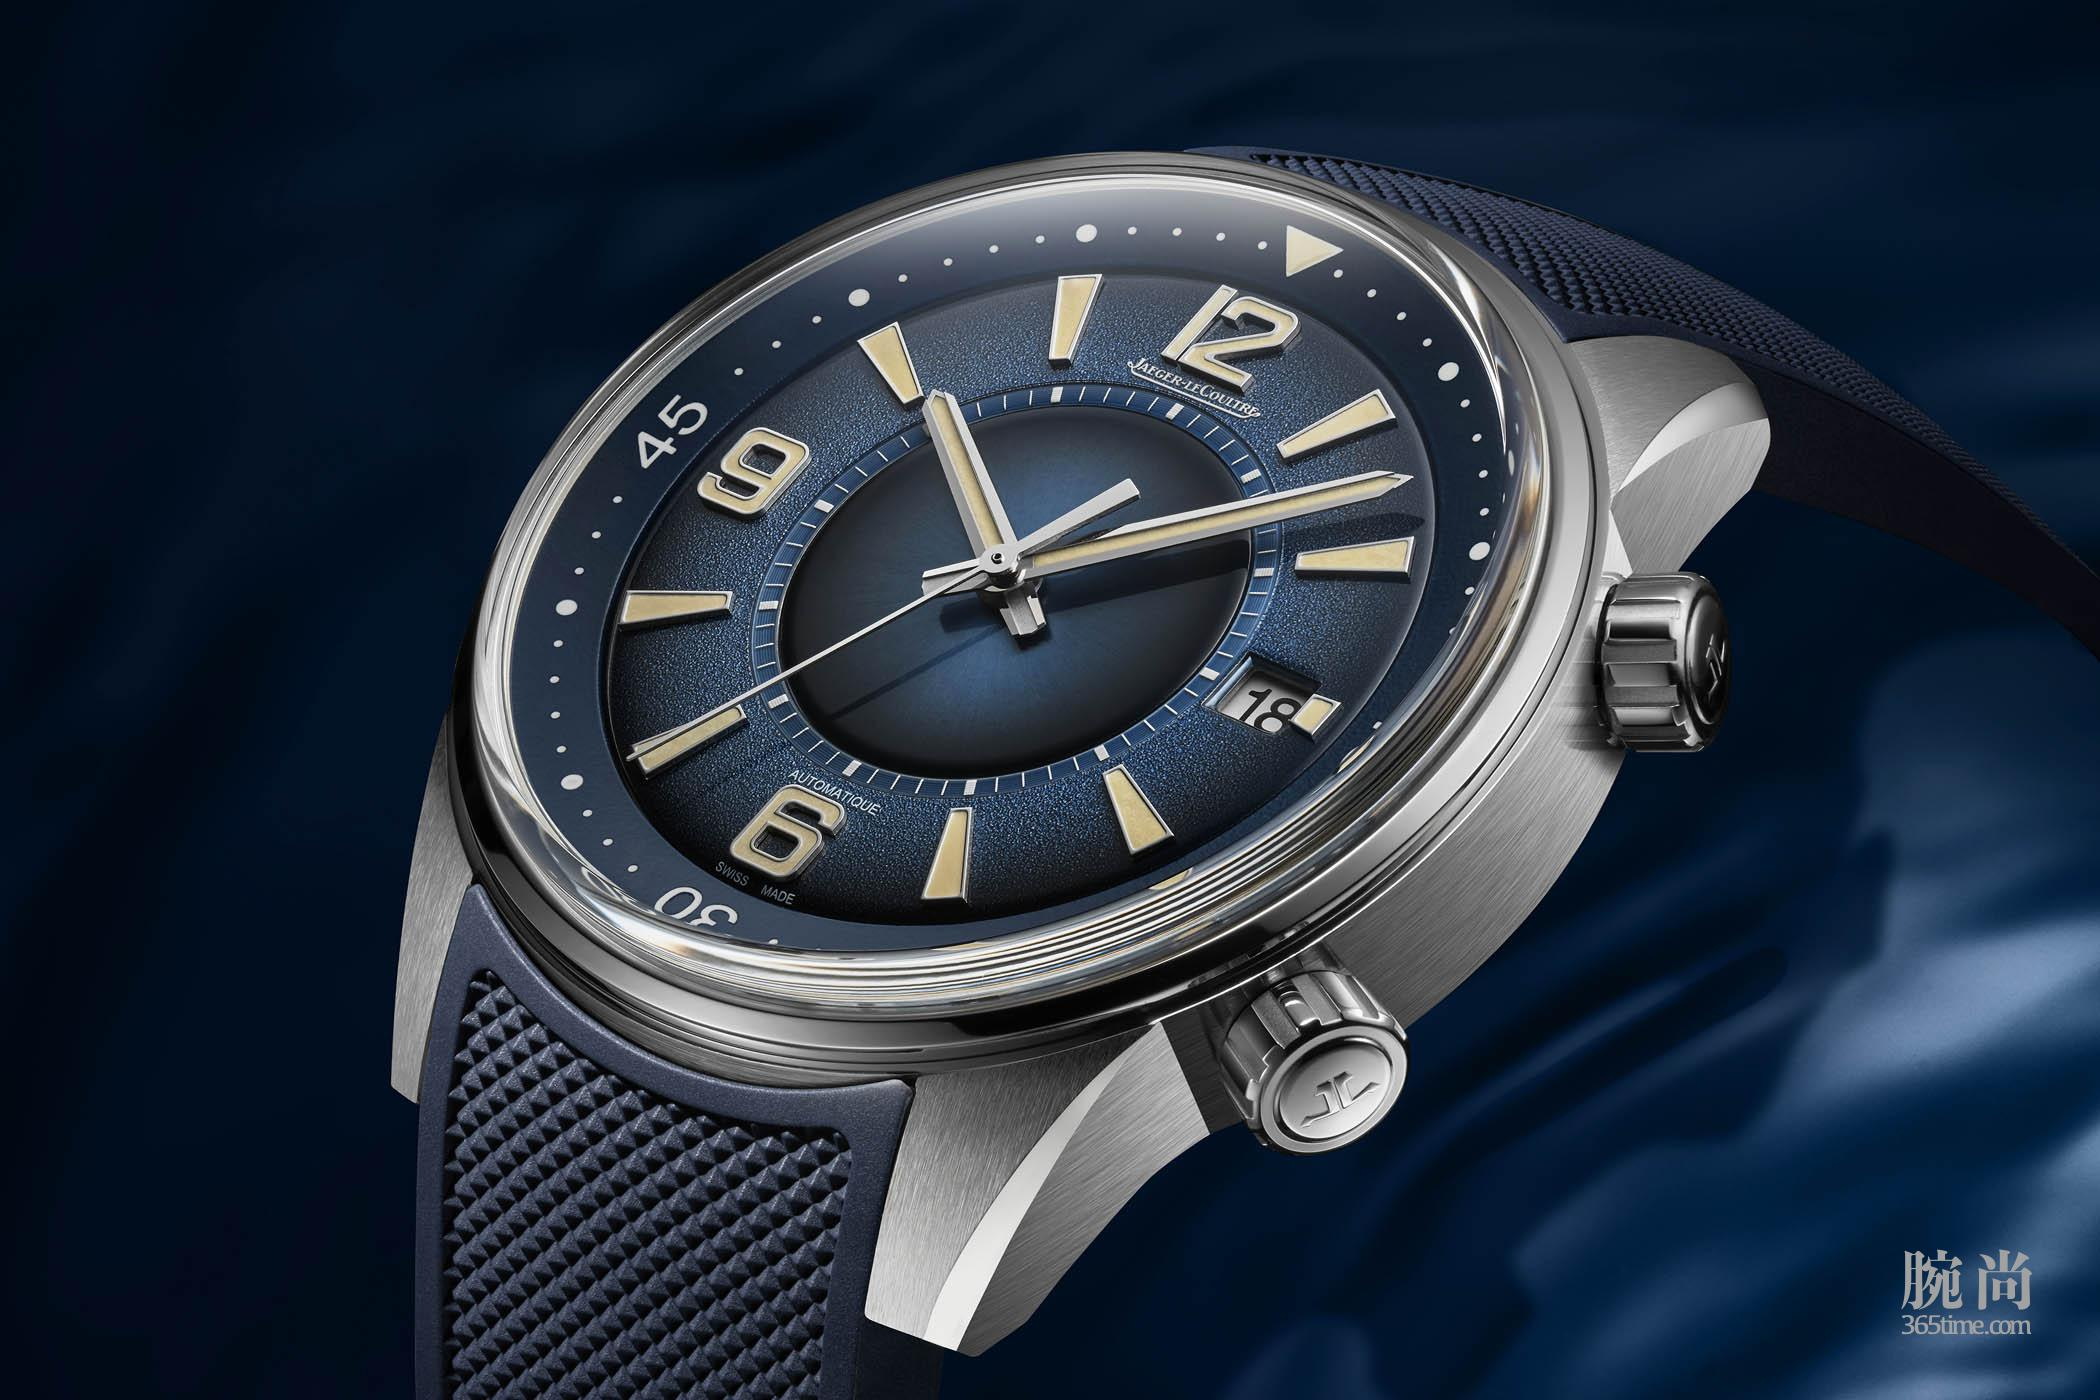 Jaeger-LeCoultre-Polaris-Date-Limited-Edition-Gradient-Blue-Q9068681-6.jpg